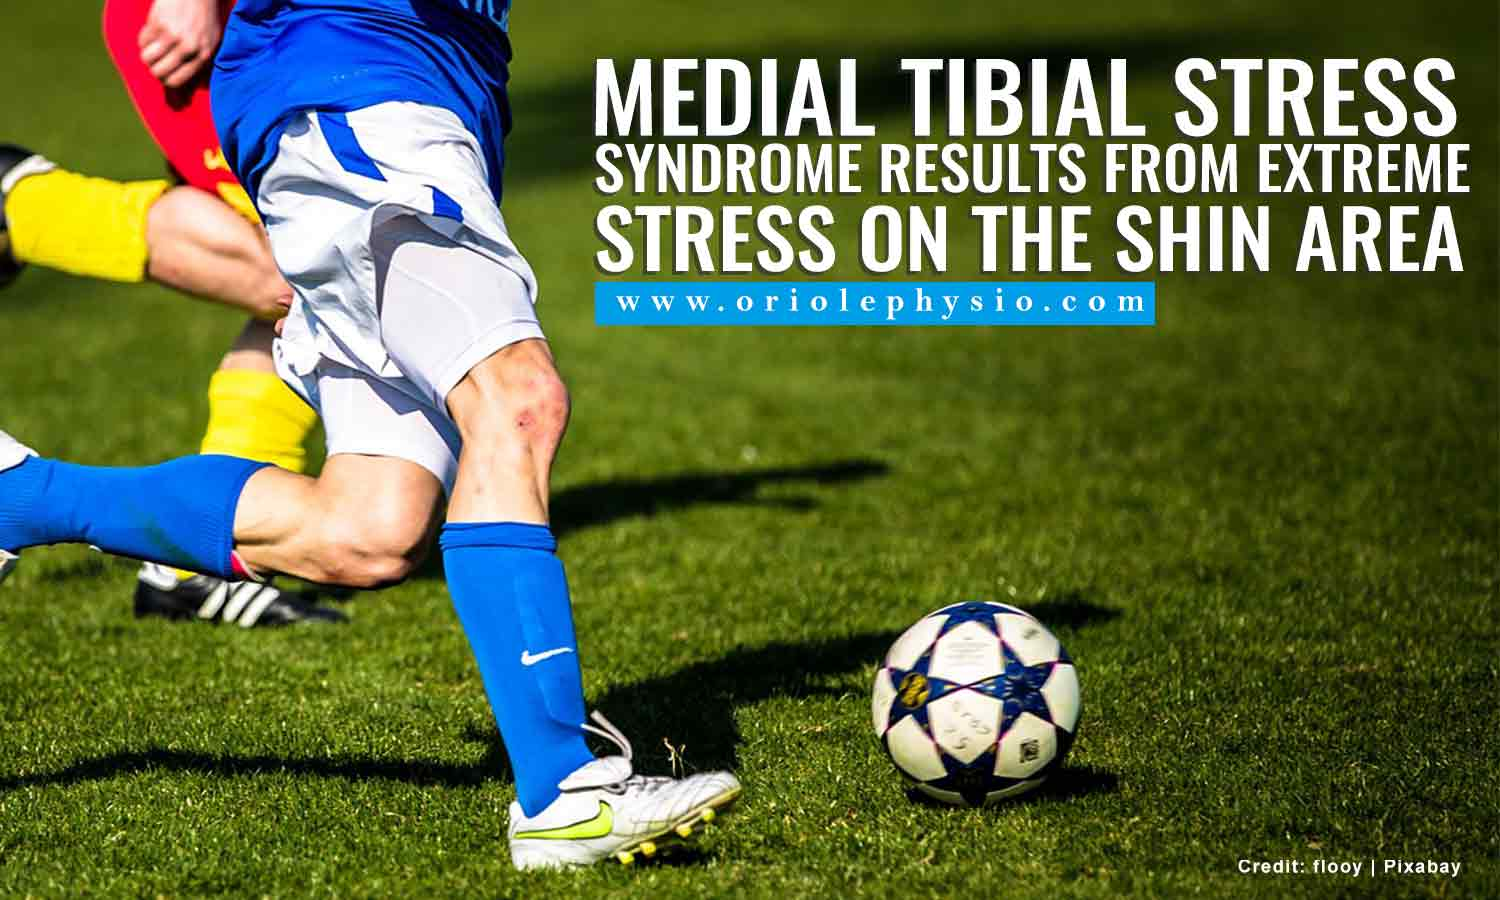 Medial tibial stress syndrome results from extreme stress on the shin area